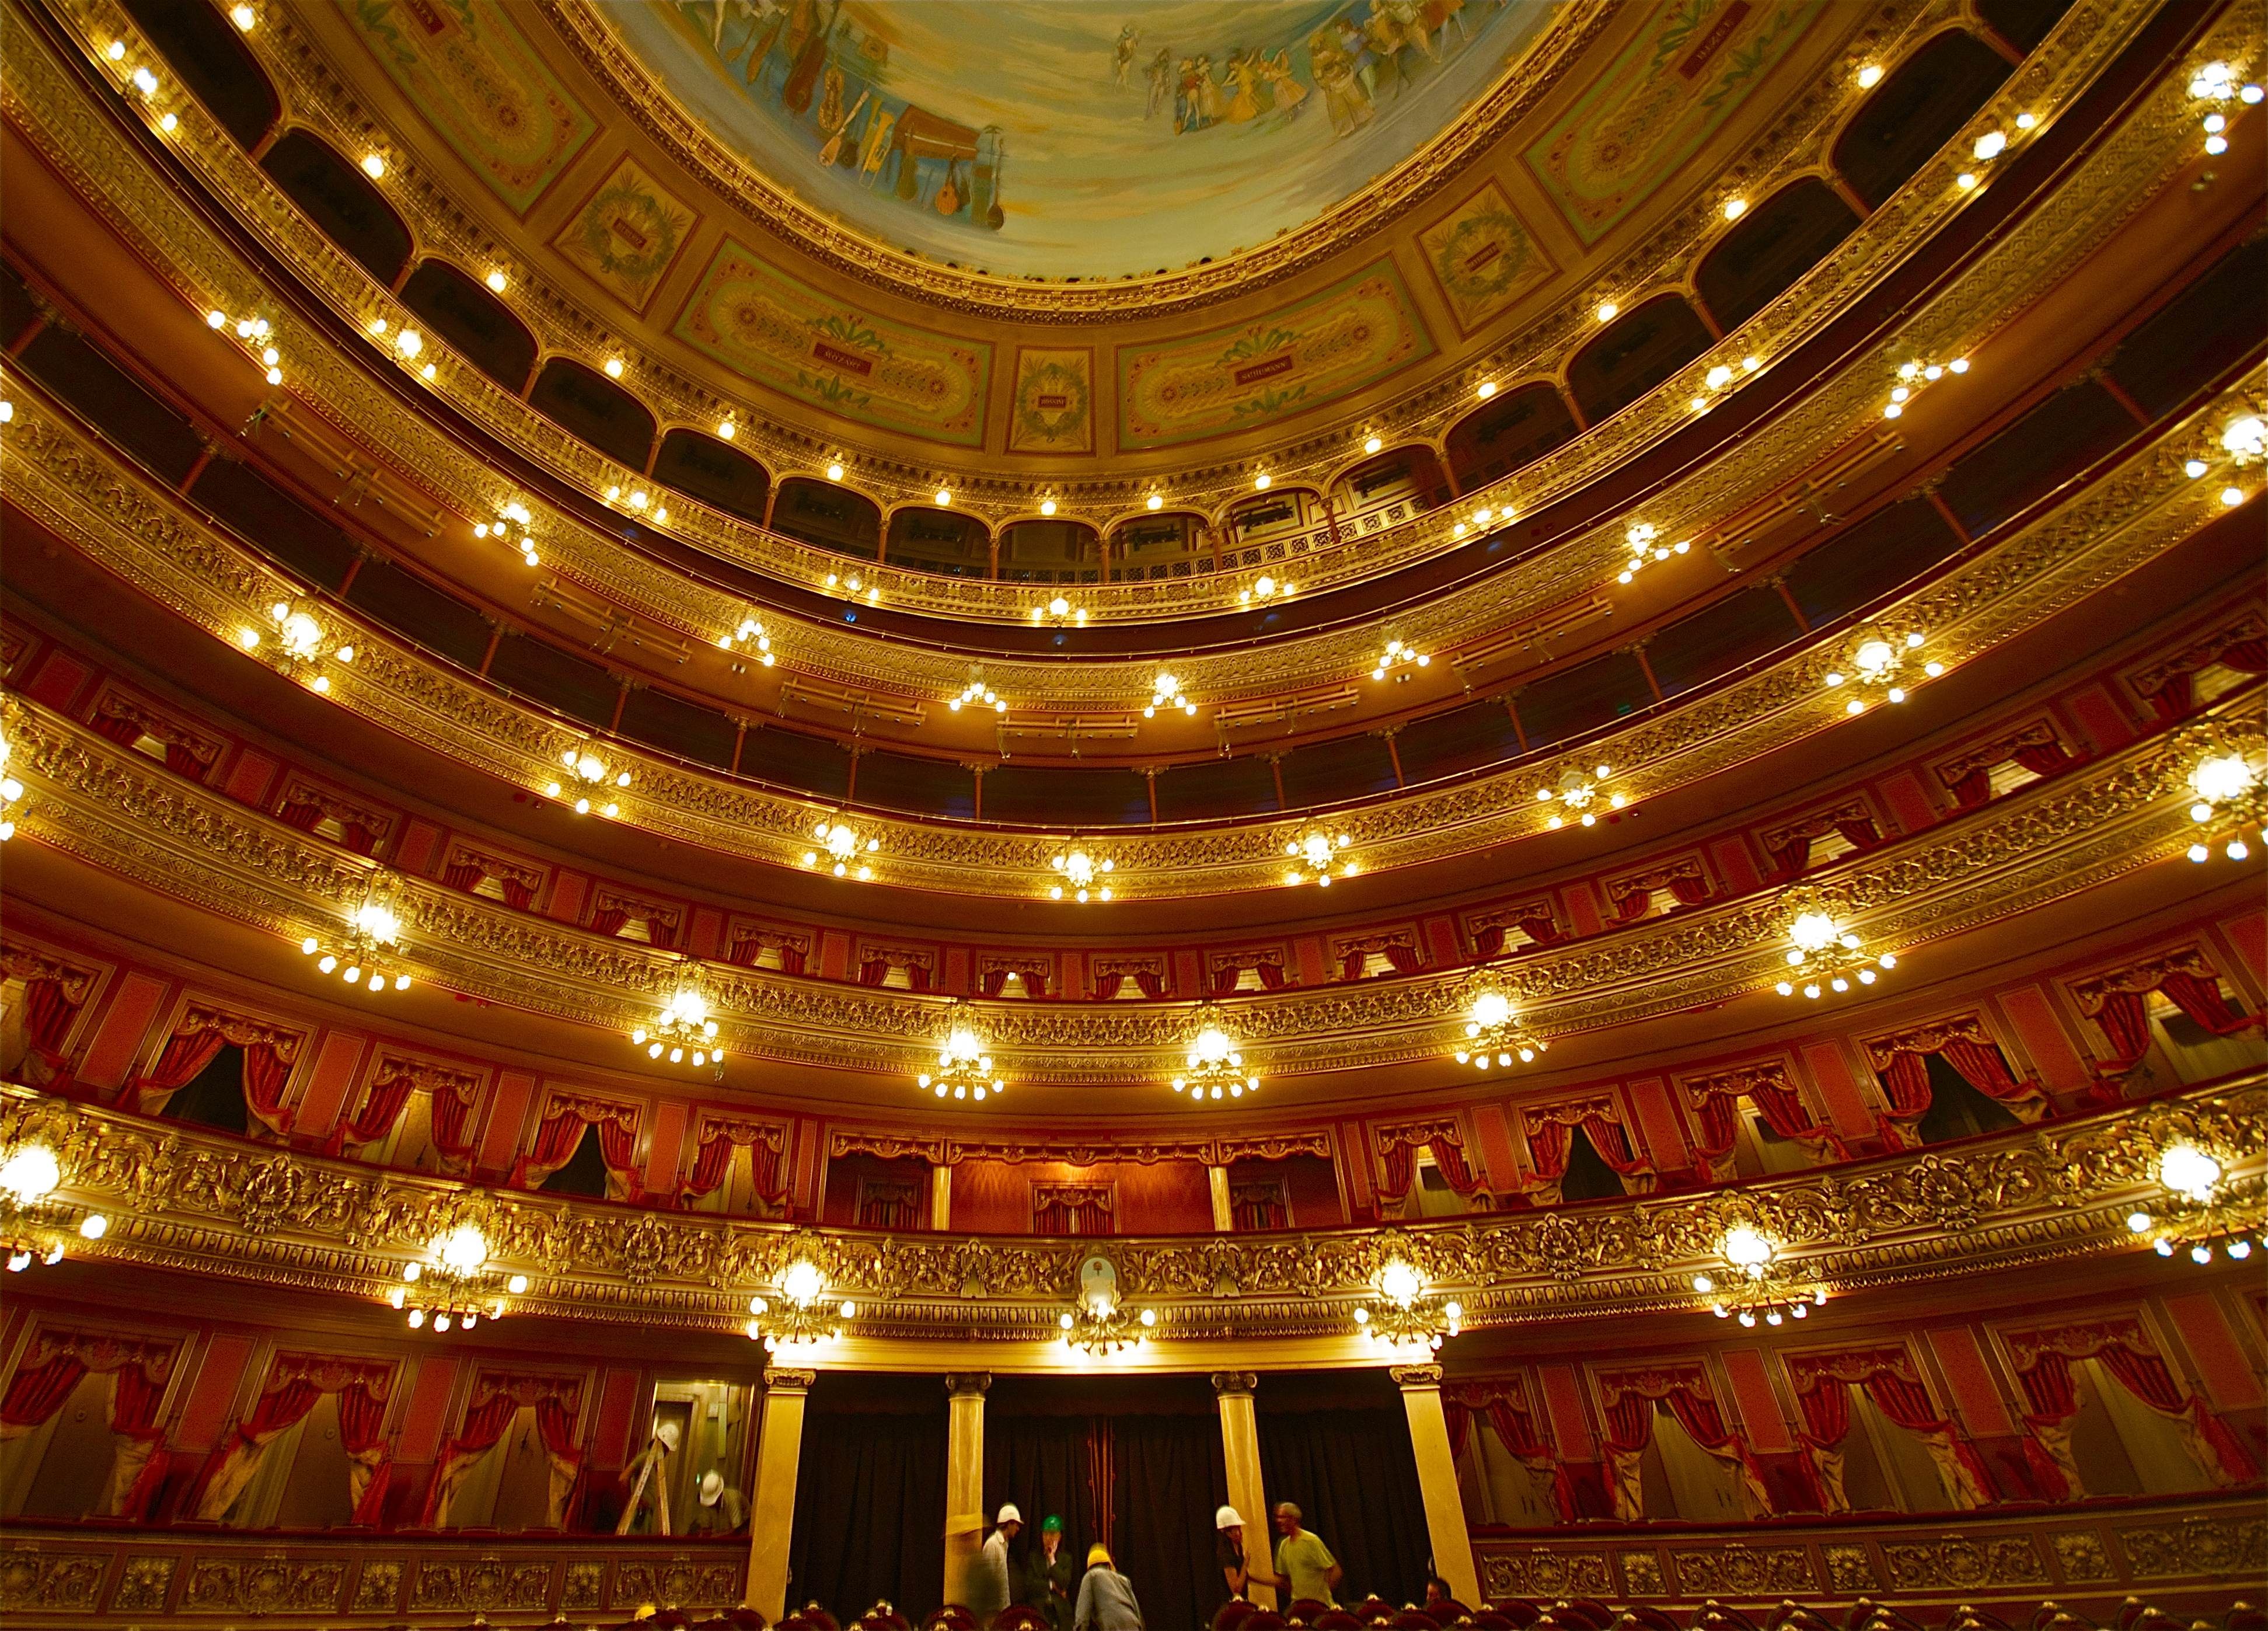 Teatro Colon - Opera House in Argentina